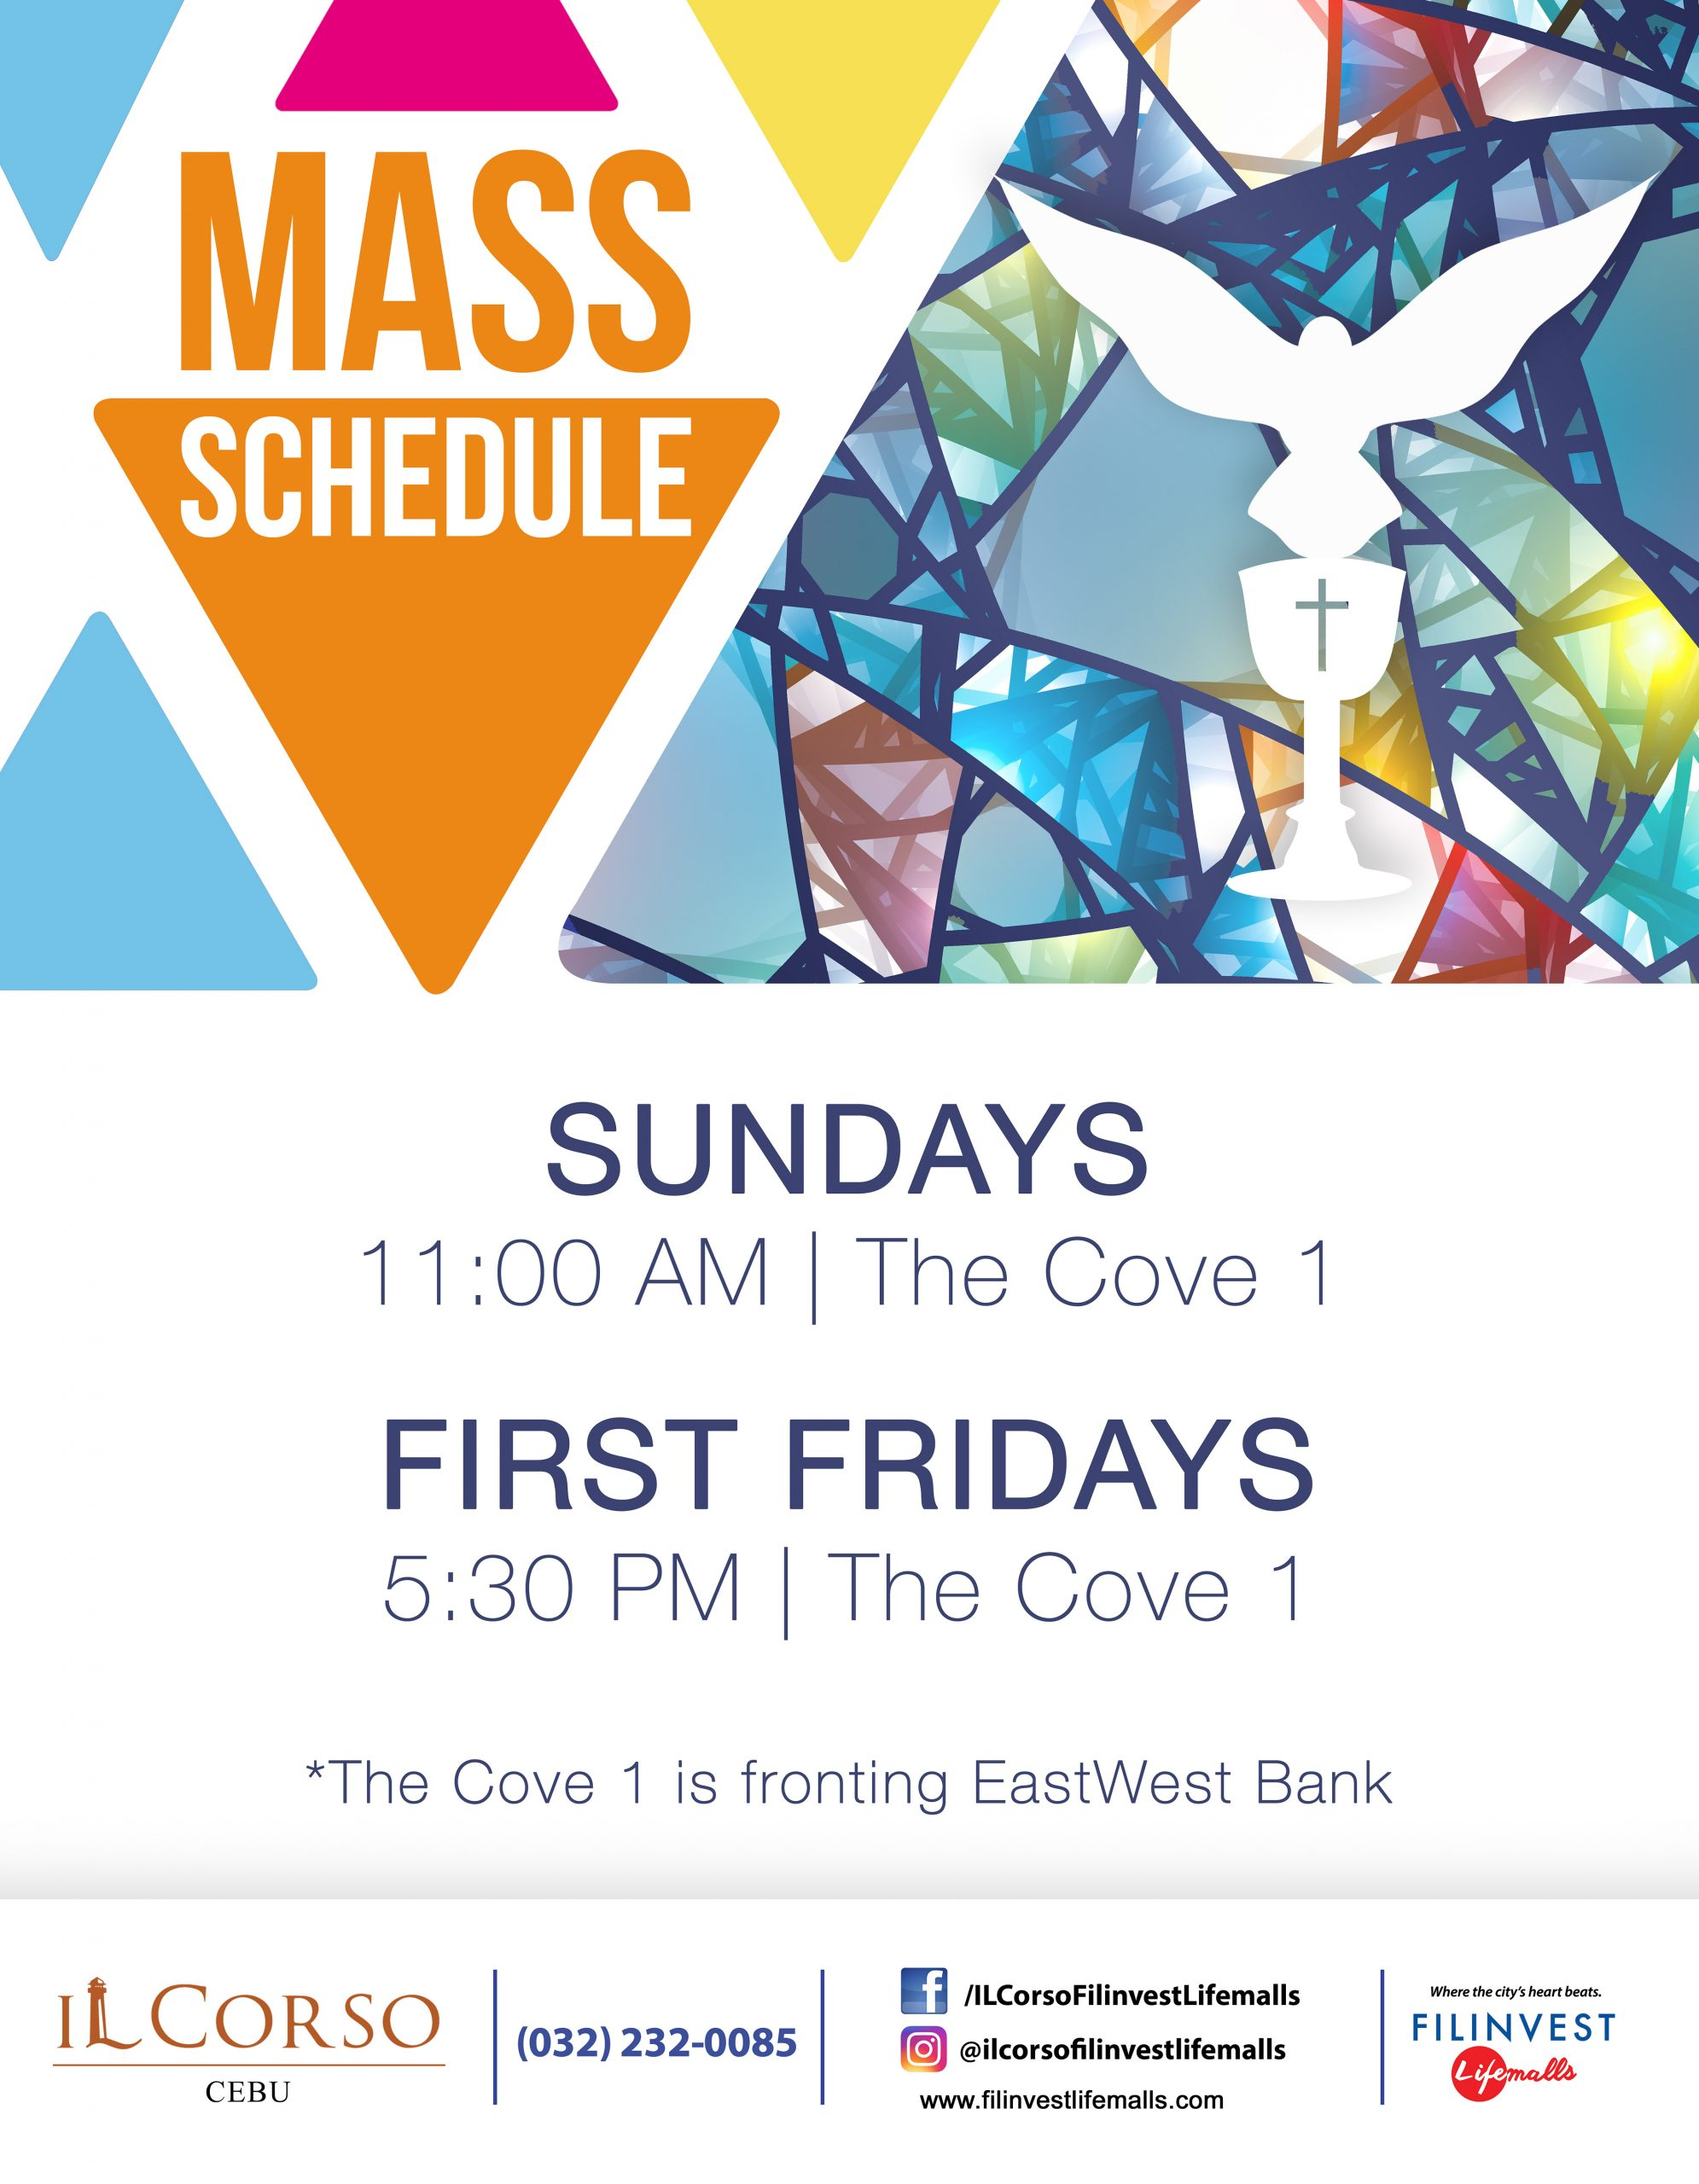 CELEBRATE THE HOLY MASS AT IL CORSO